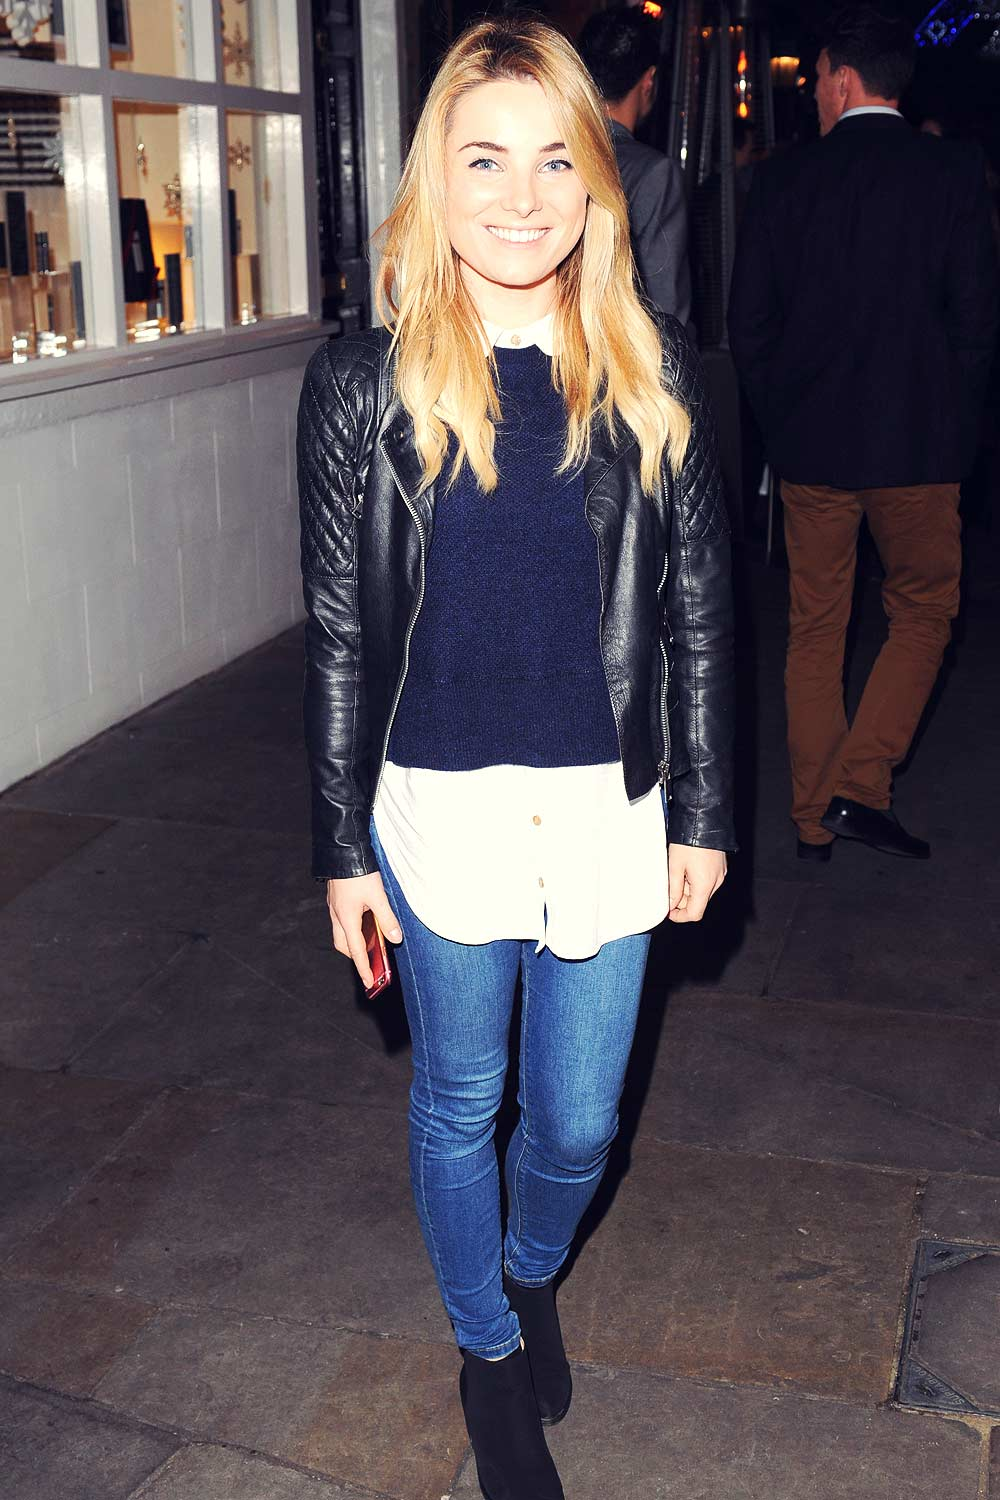 Sian Welby attended the Metro's Guilty Pleasures Christmas Party